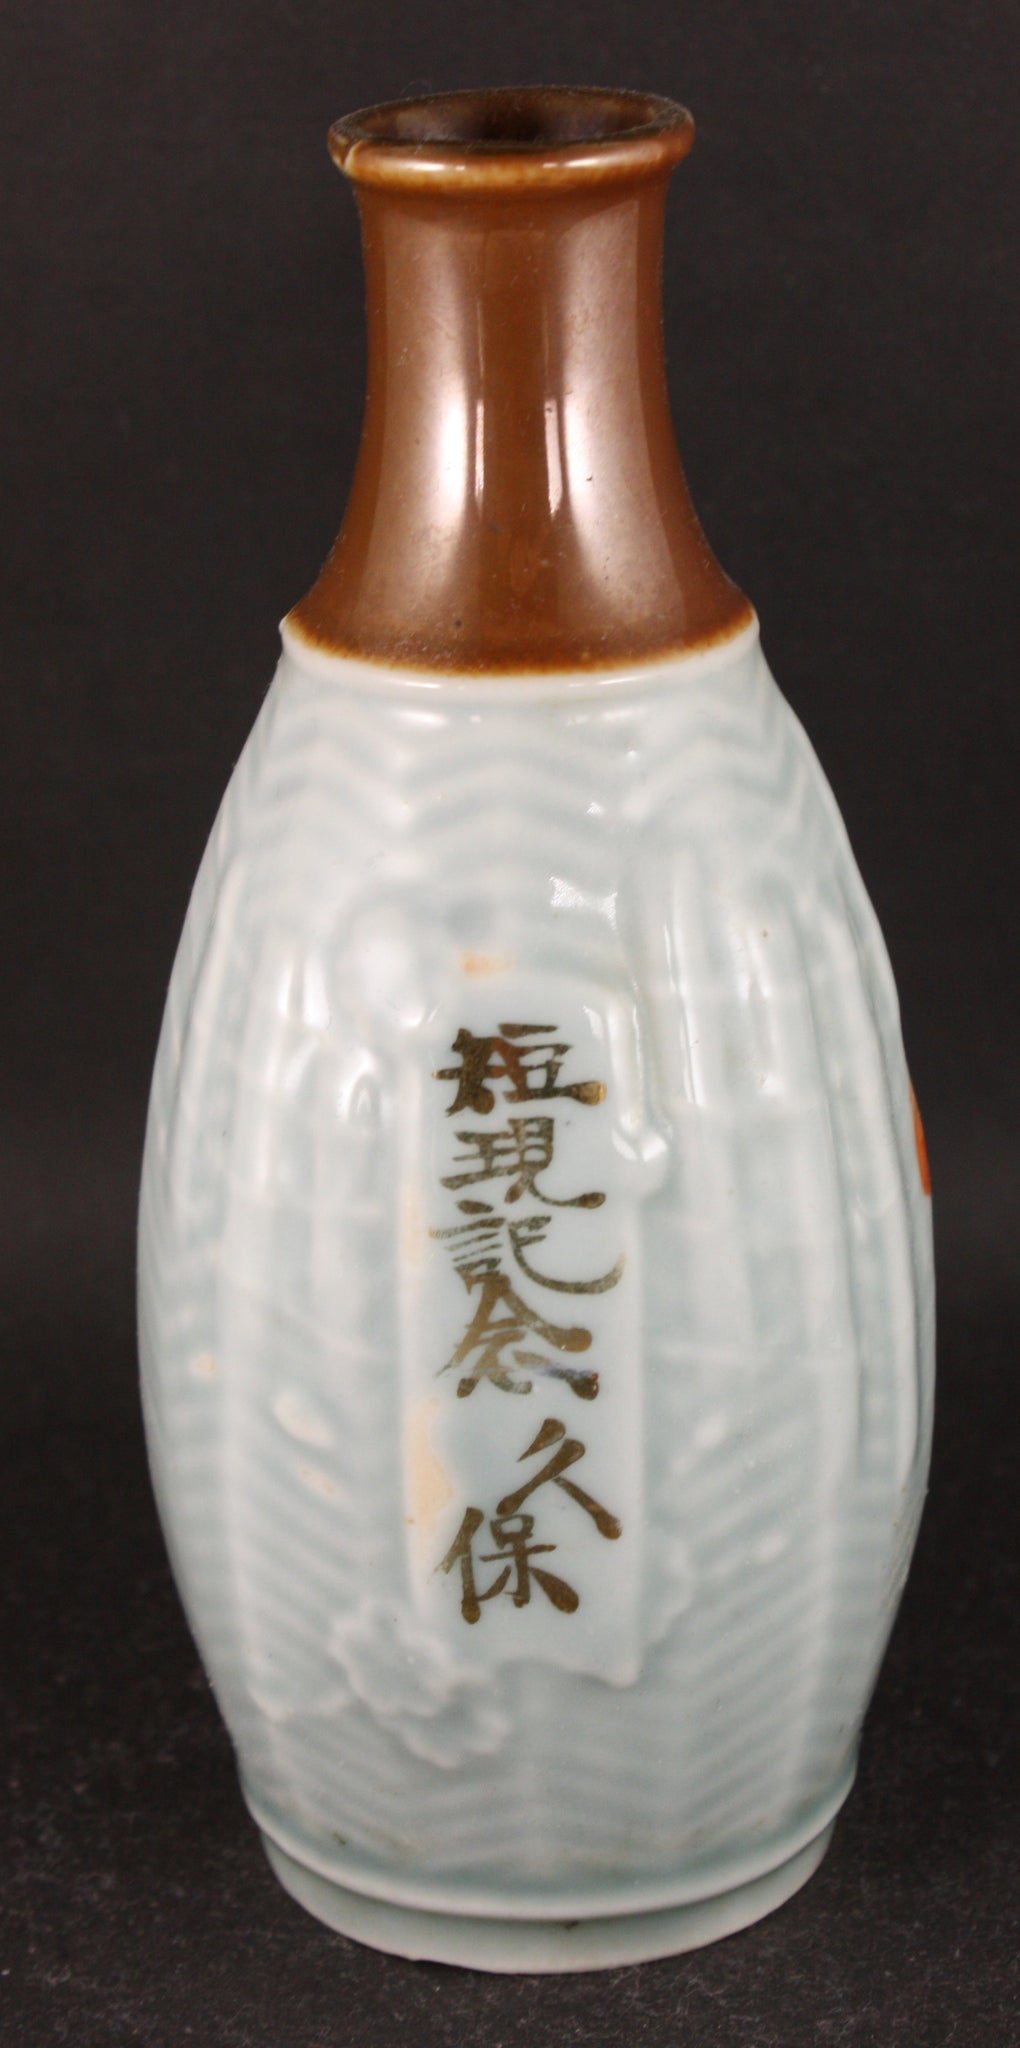 Rare Antique Japanese Military Three Soldiers Nikudan Shanghai Incident Army Sake Bottle